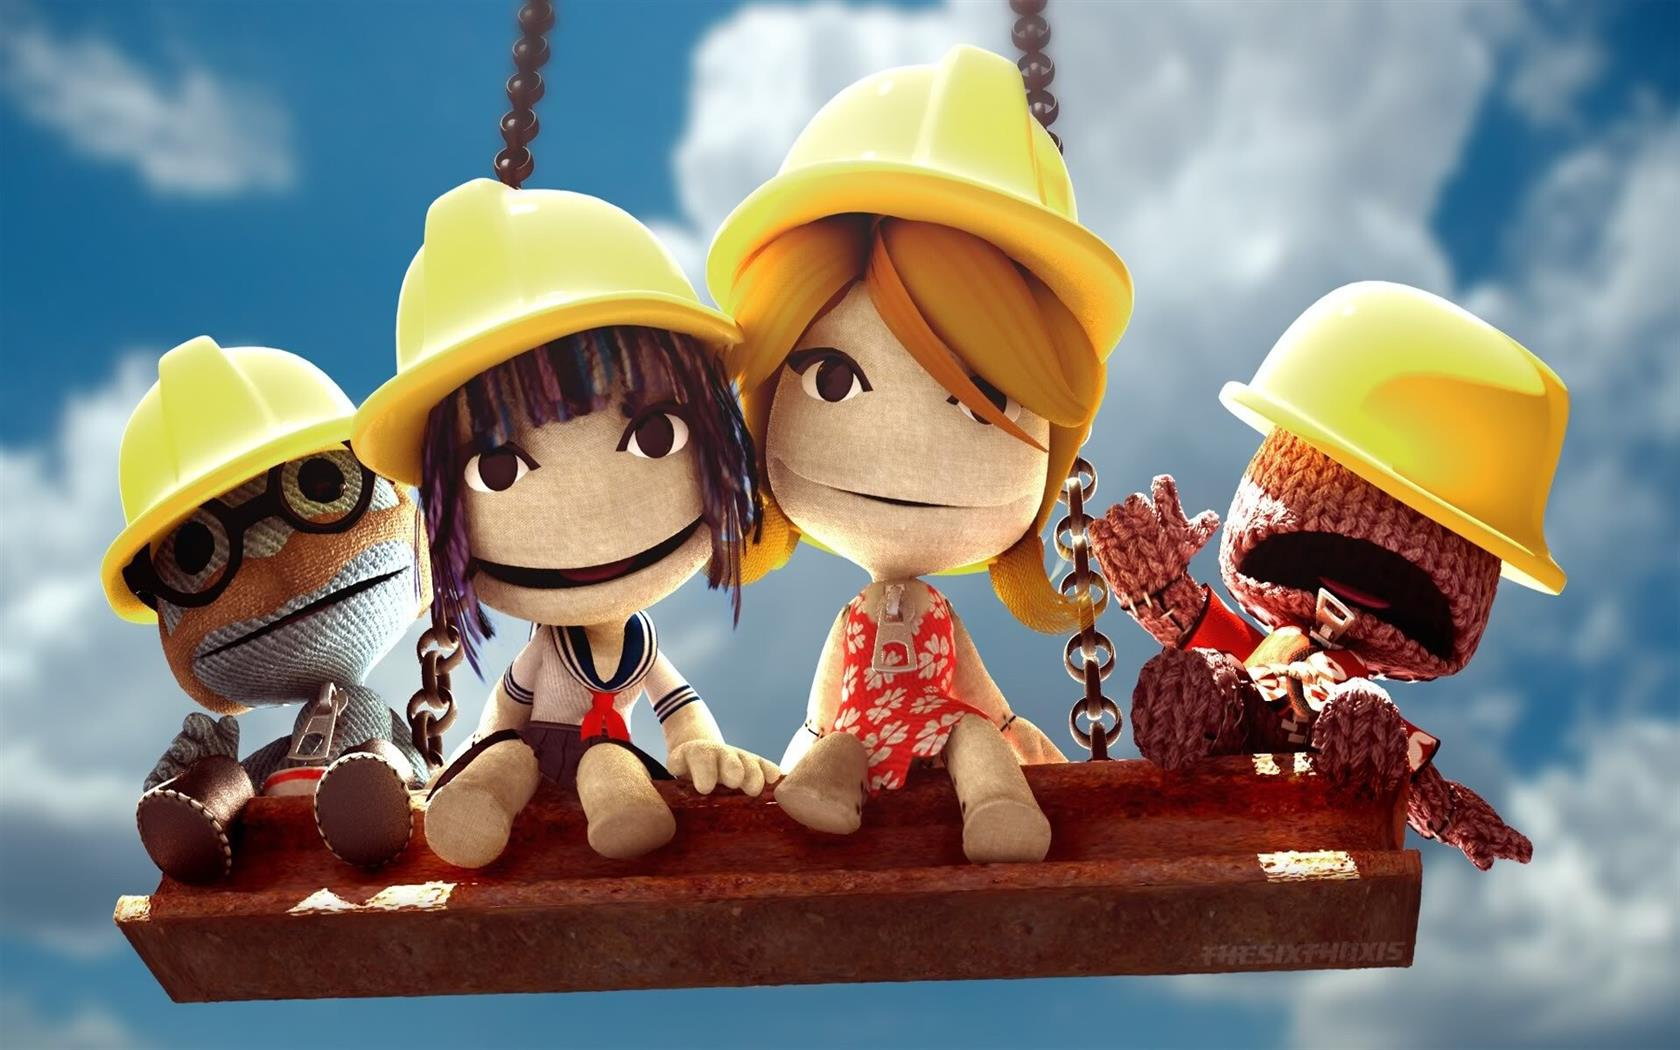 1680x1050 Little Big Planet Cartoon HD Image